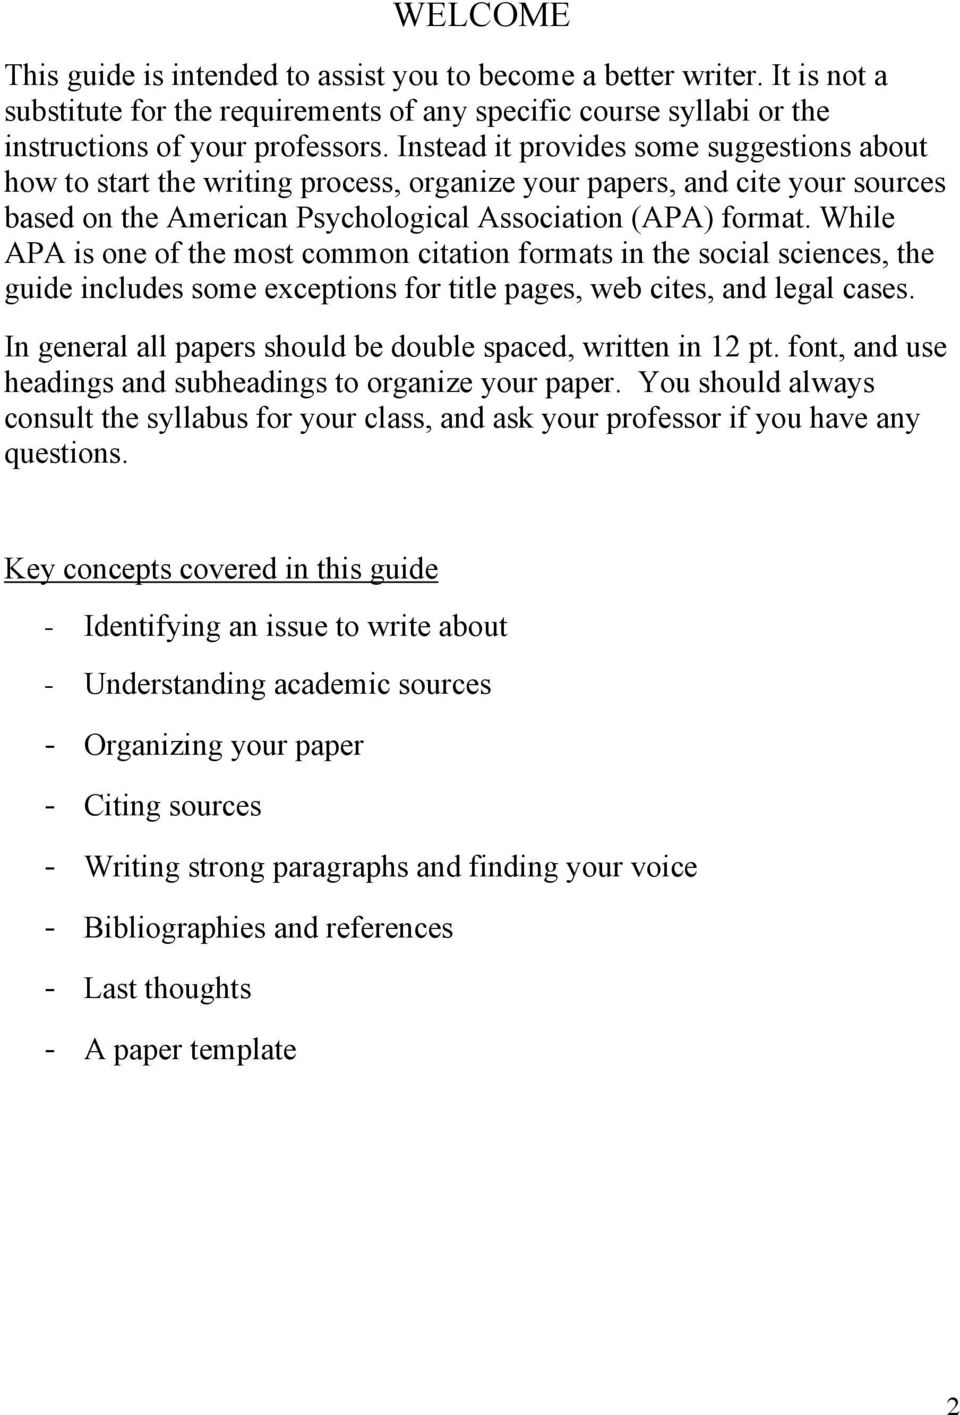 While APA is one of the most common citation formats in the social sciences, the guide includes some exceptions for title pages, web cites, and legal cases.